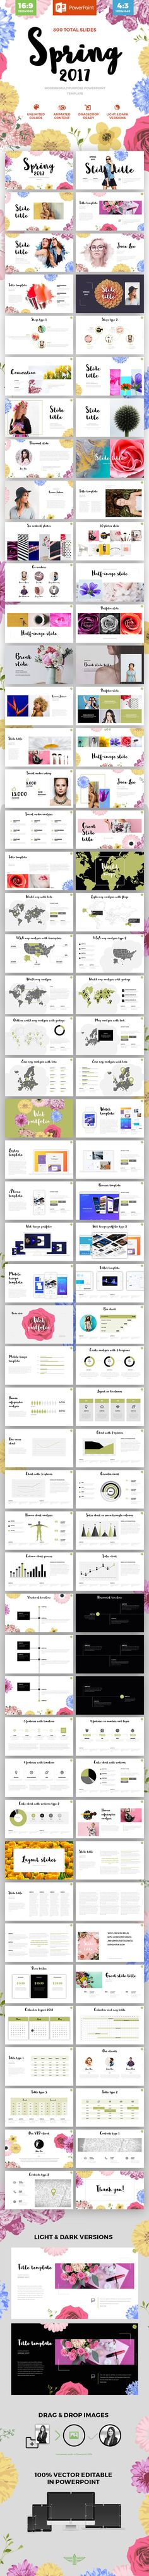 Spring 2017  Powerpoint template  #advertisement #spring • Download ➝ https://graphicriver.net/item/spring-2017-powerpoint-template/19524971?ref=pxcr